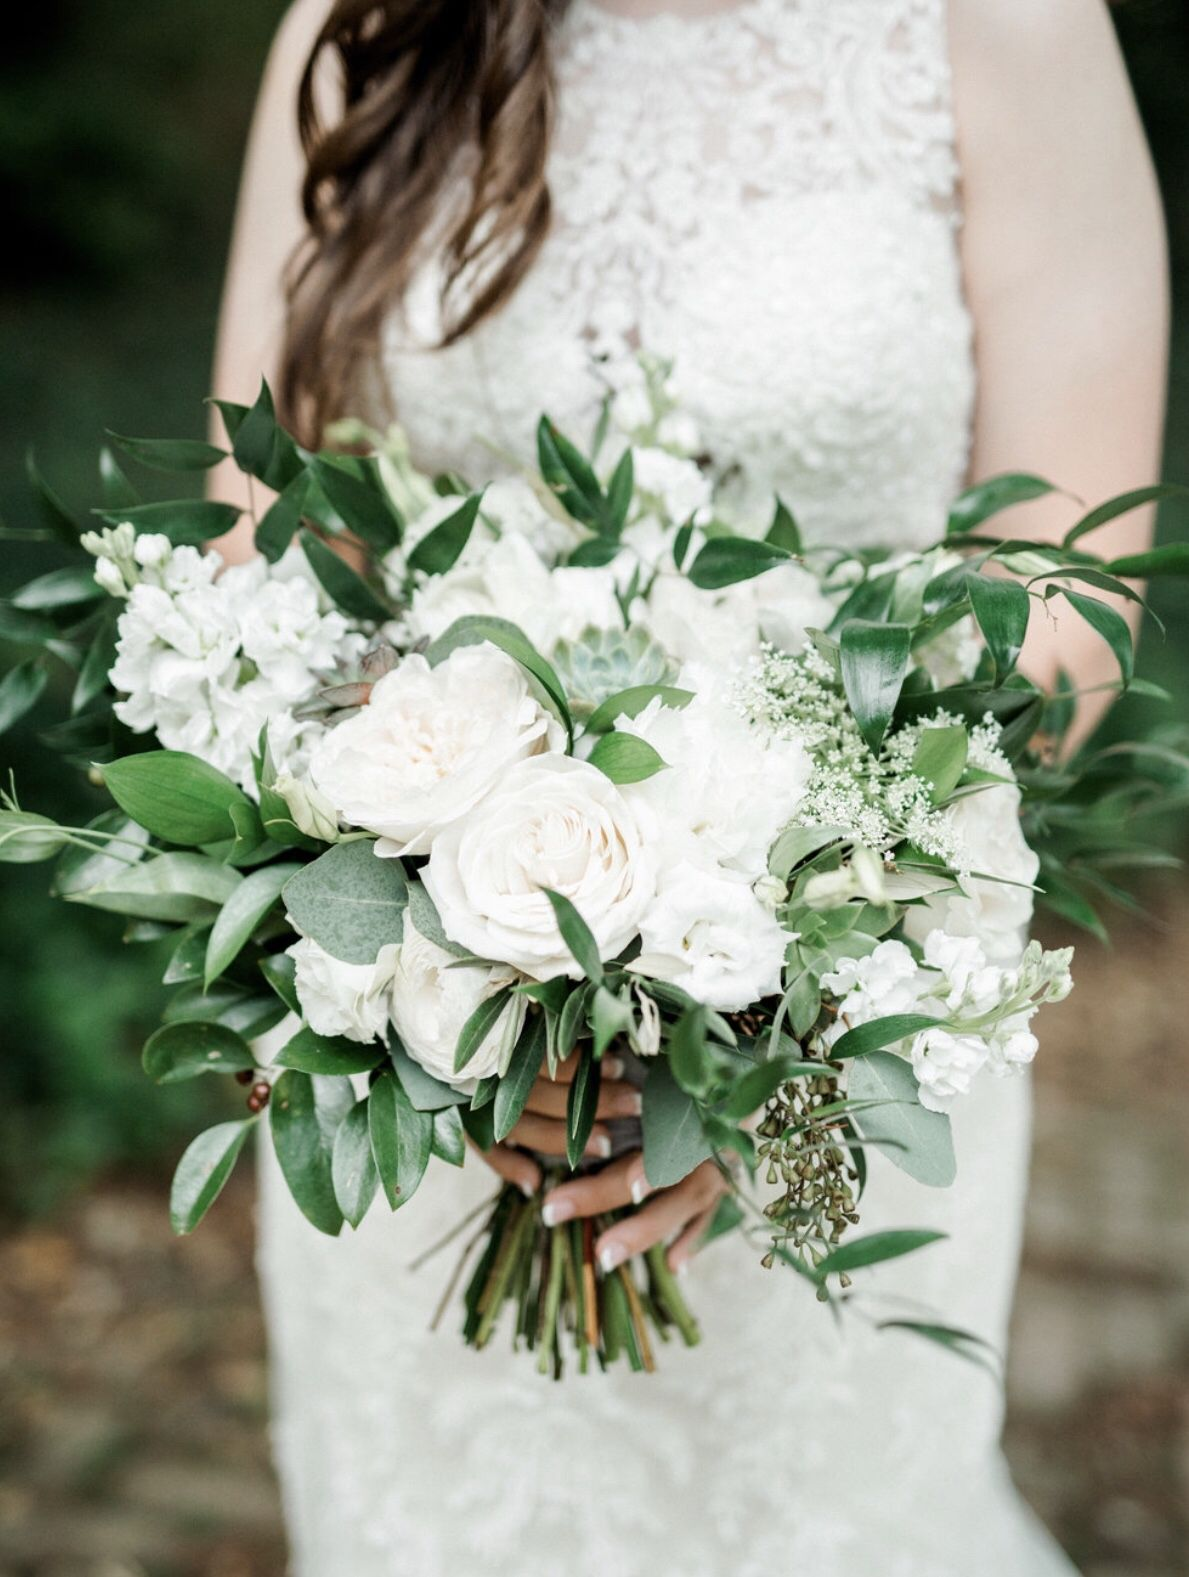 Organic White Bridal Bouquet #whitebridalbouquets